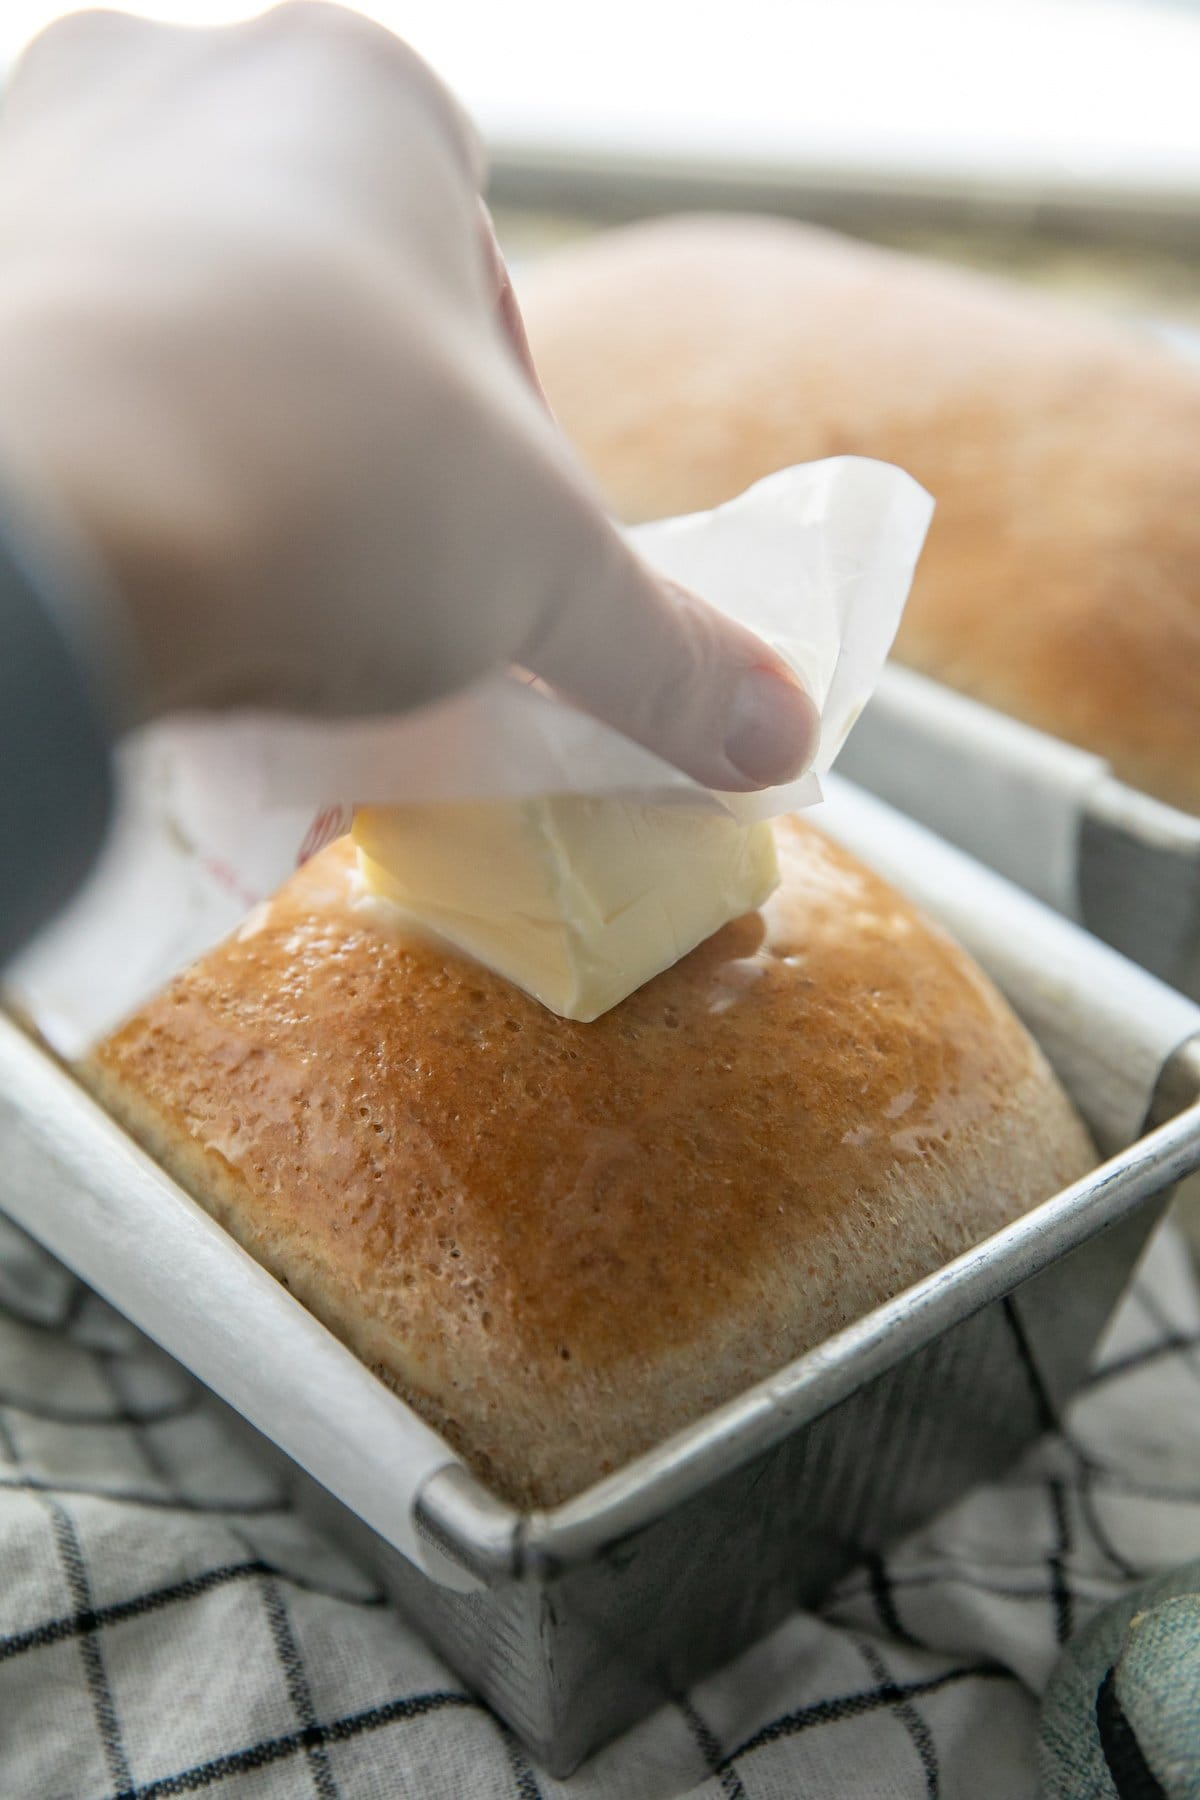 a hand rubbing a stick of butter on a freshly baked loaf of bread still in the pan